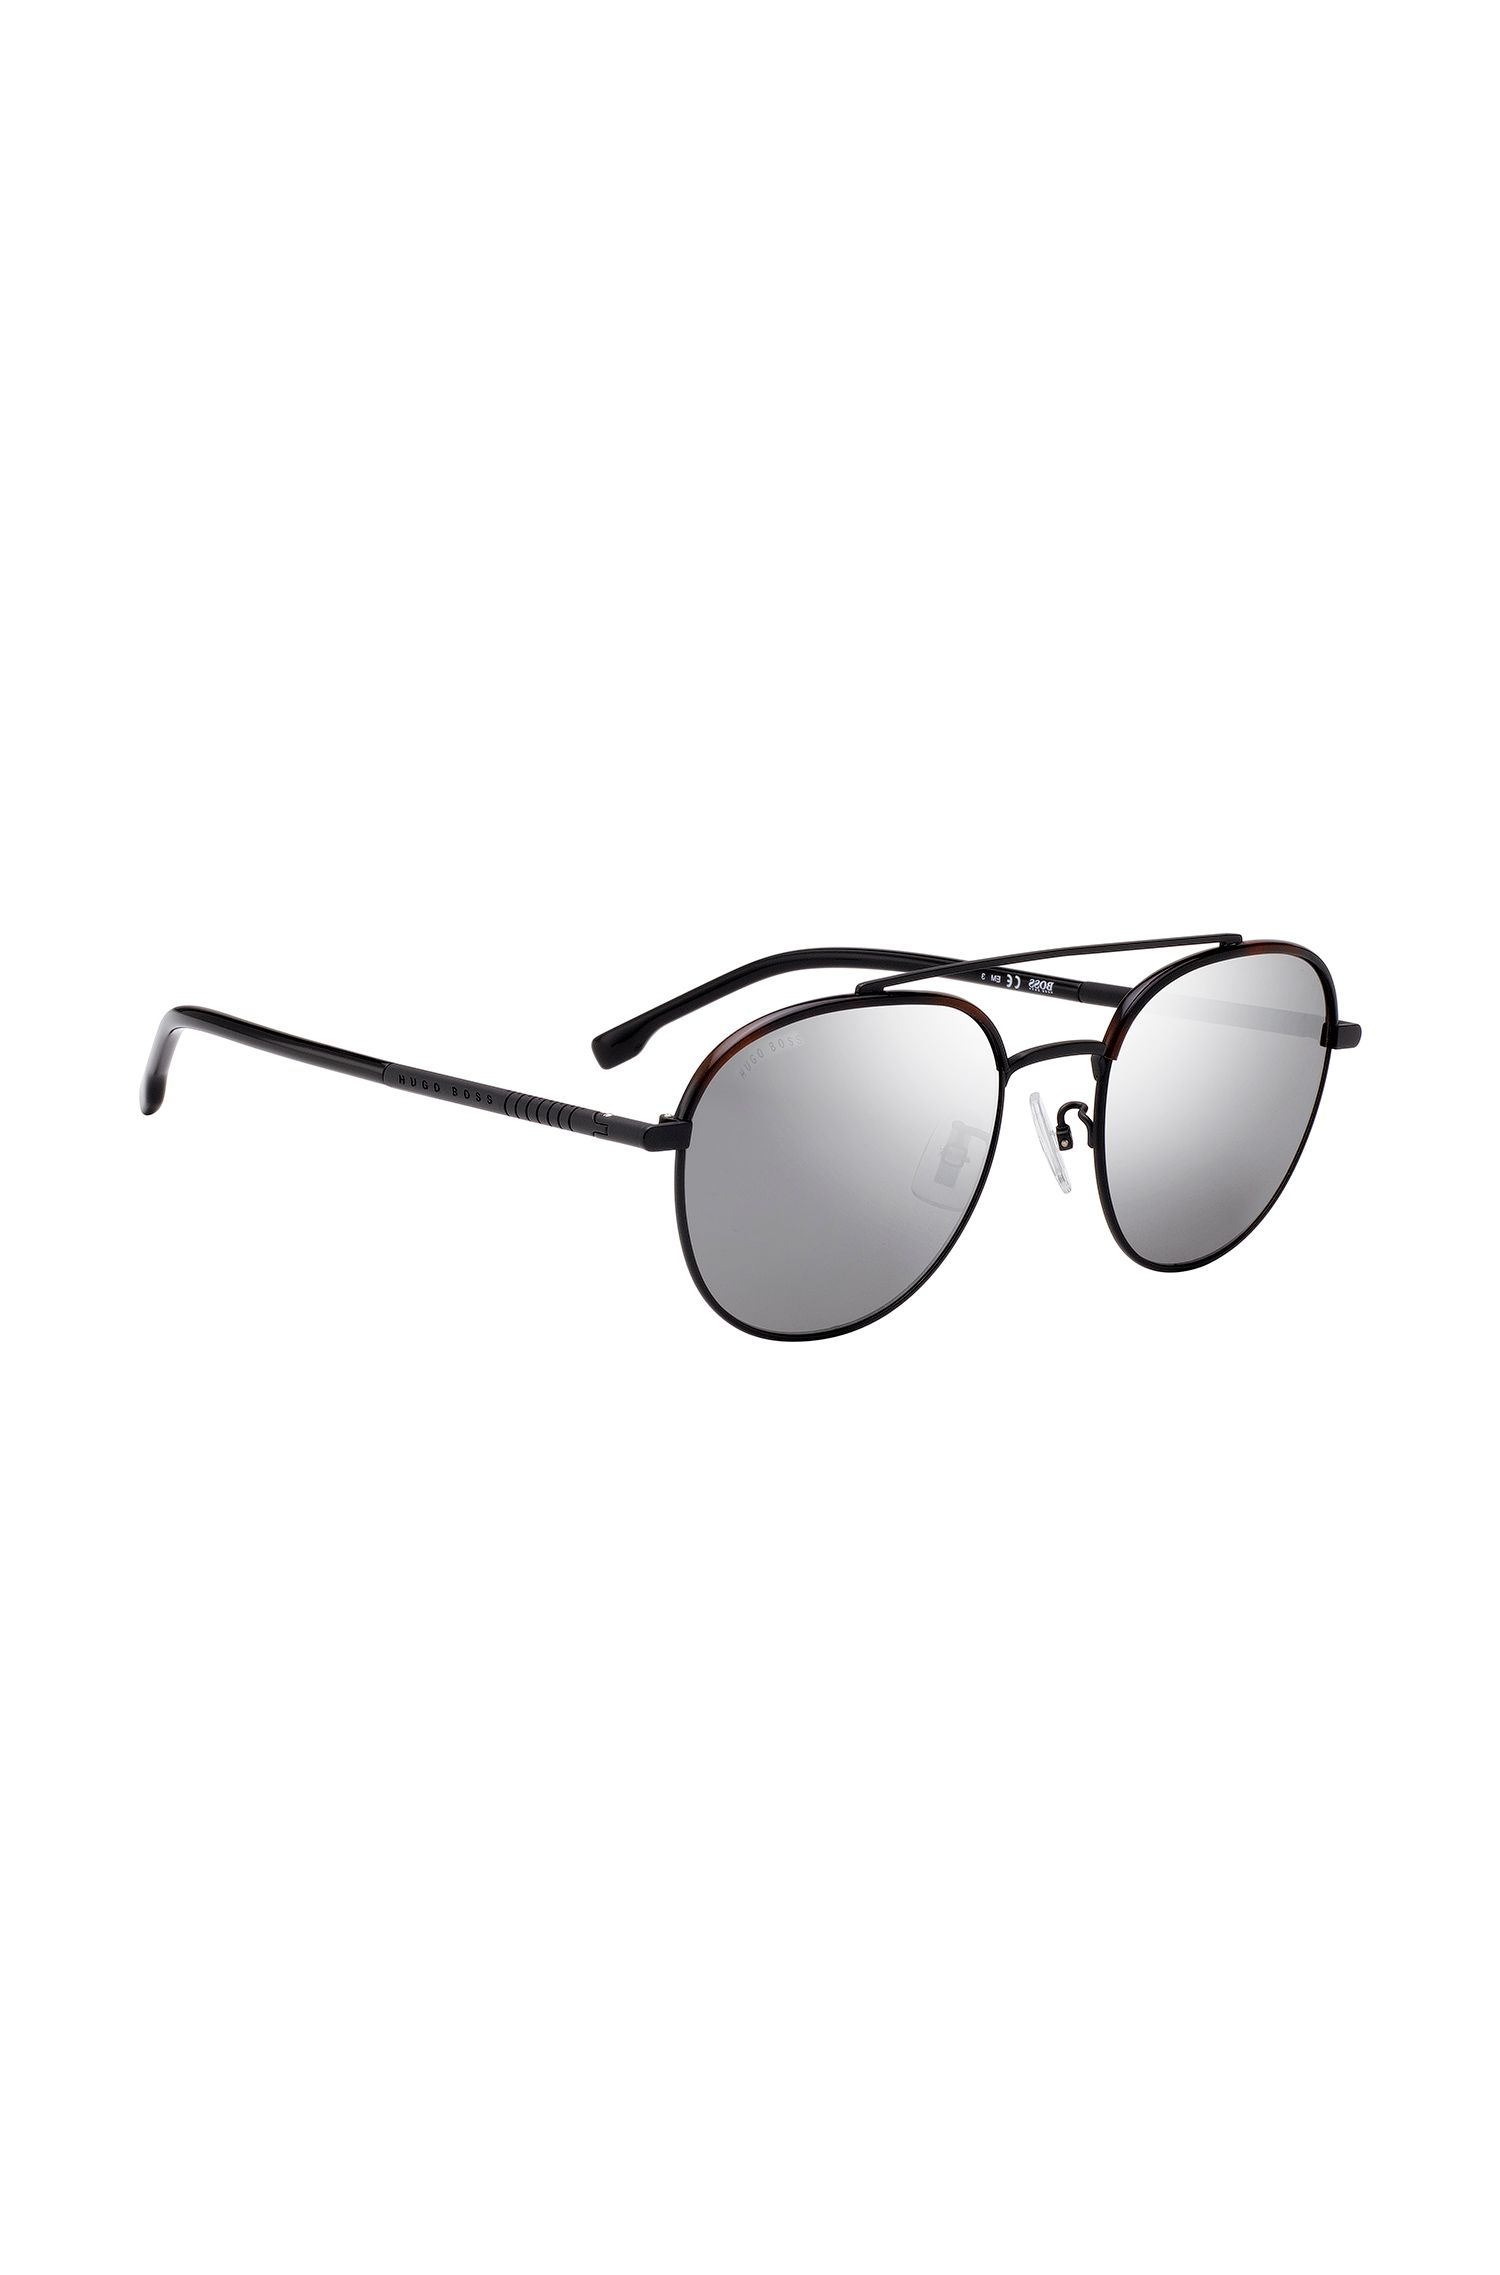 Double-bridge titanium sunglasses with Havana acetate details, Assorted-Pre-Pack